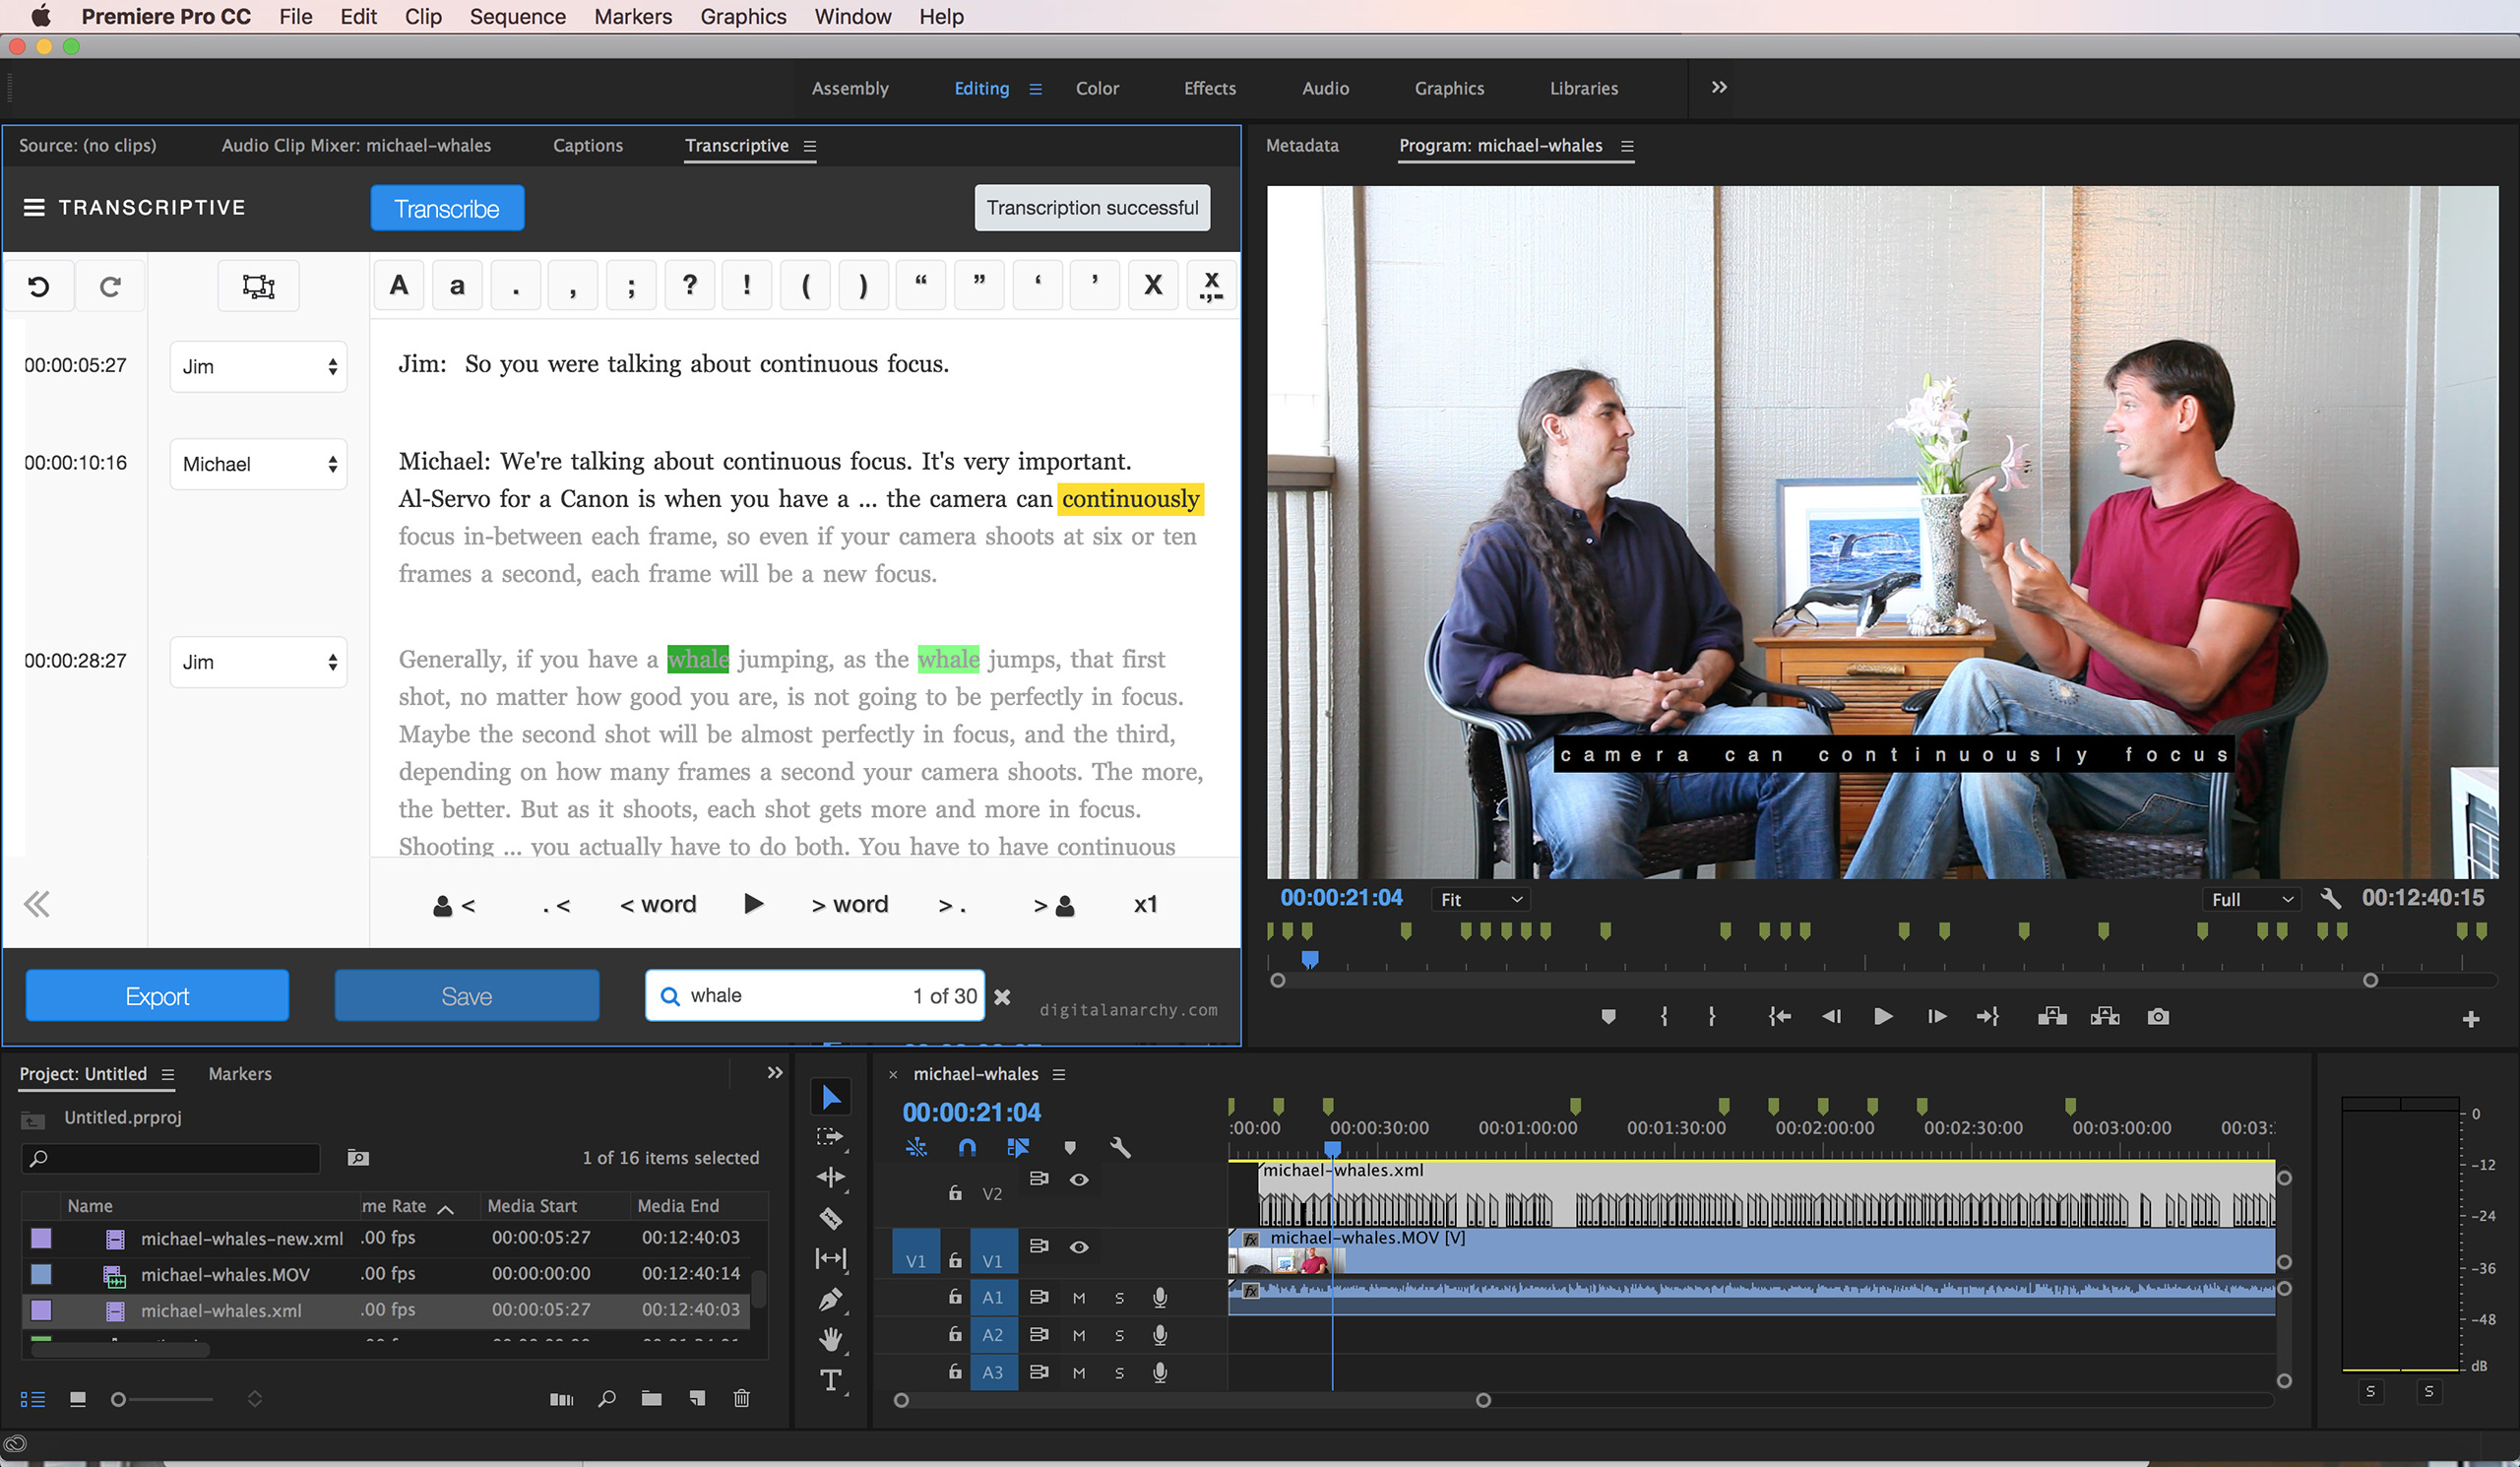 Transcriptive, from Digital Anarchy, provides speech-to-text within Premiere Pro.